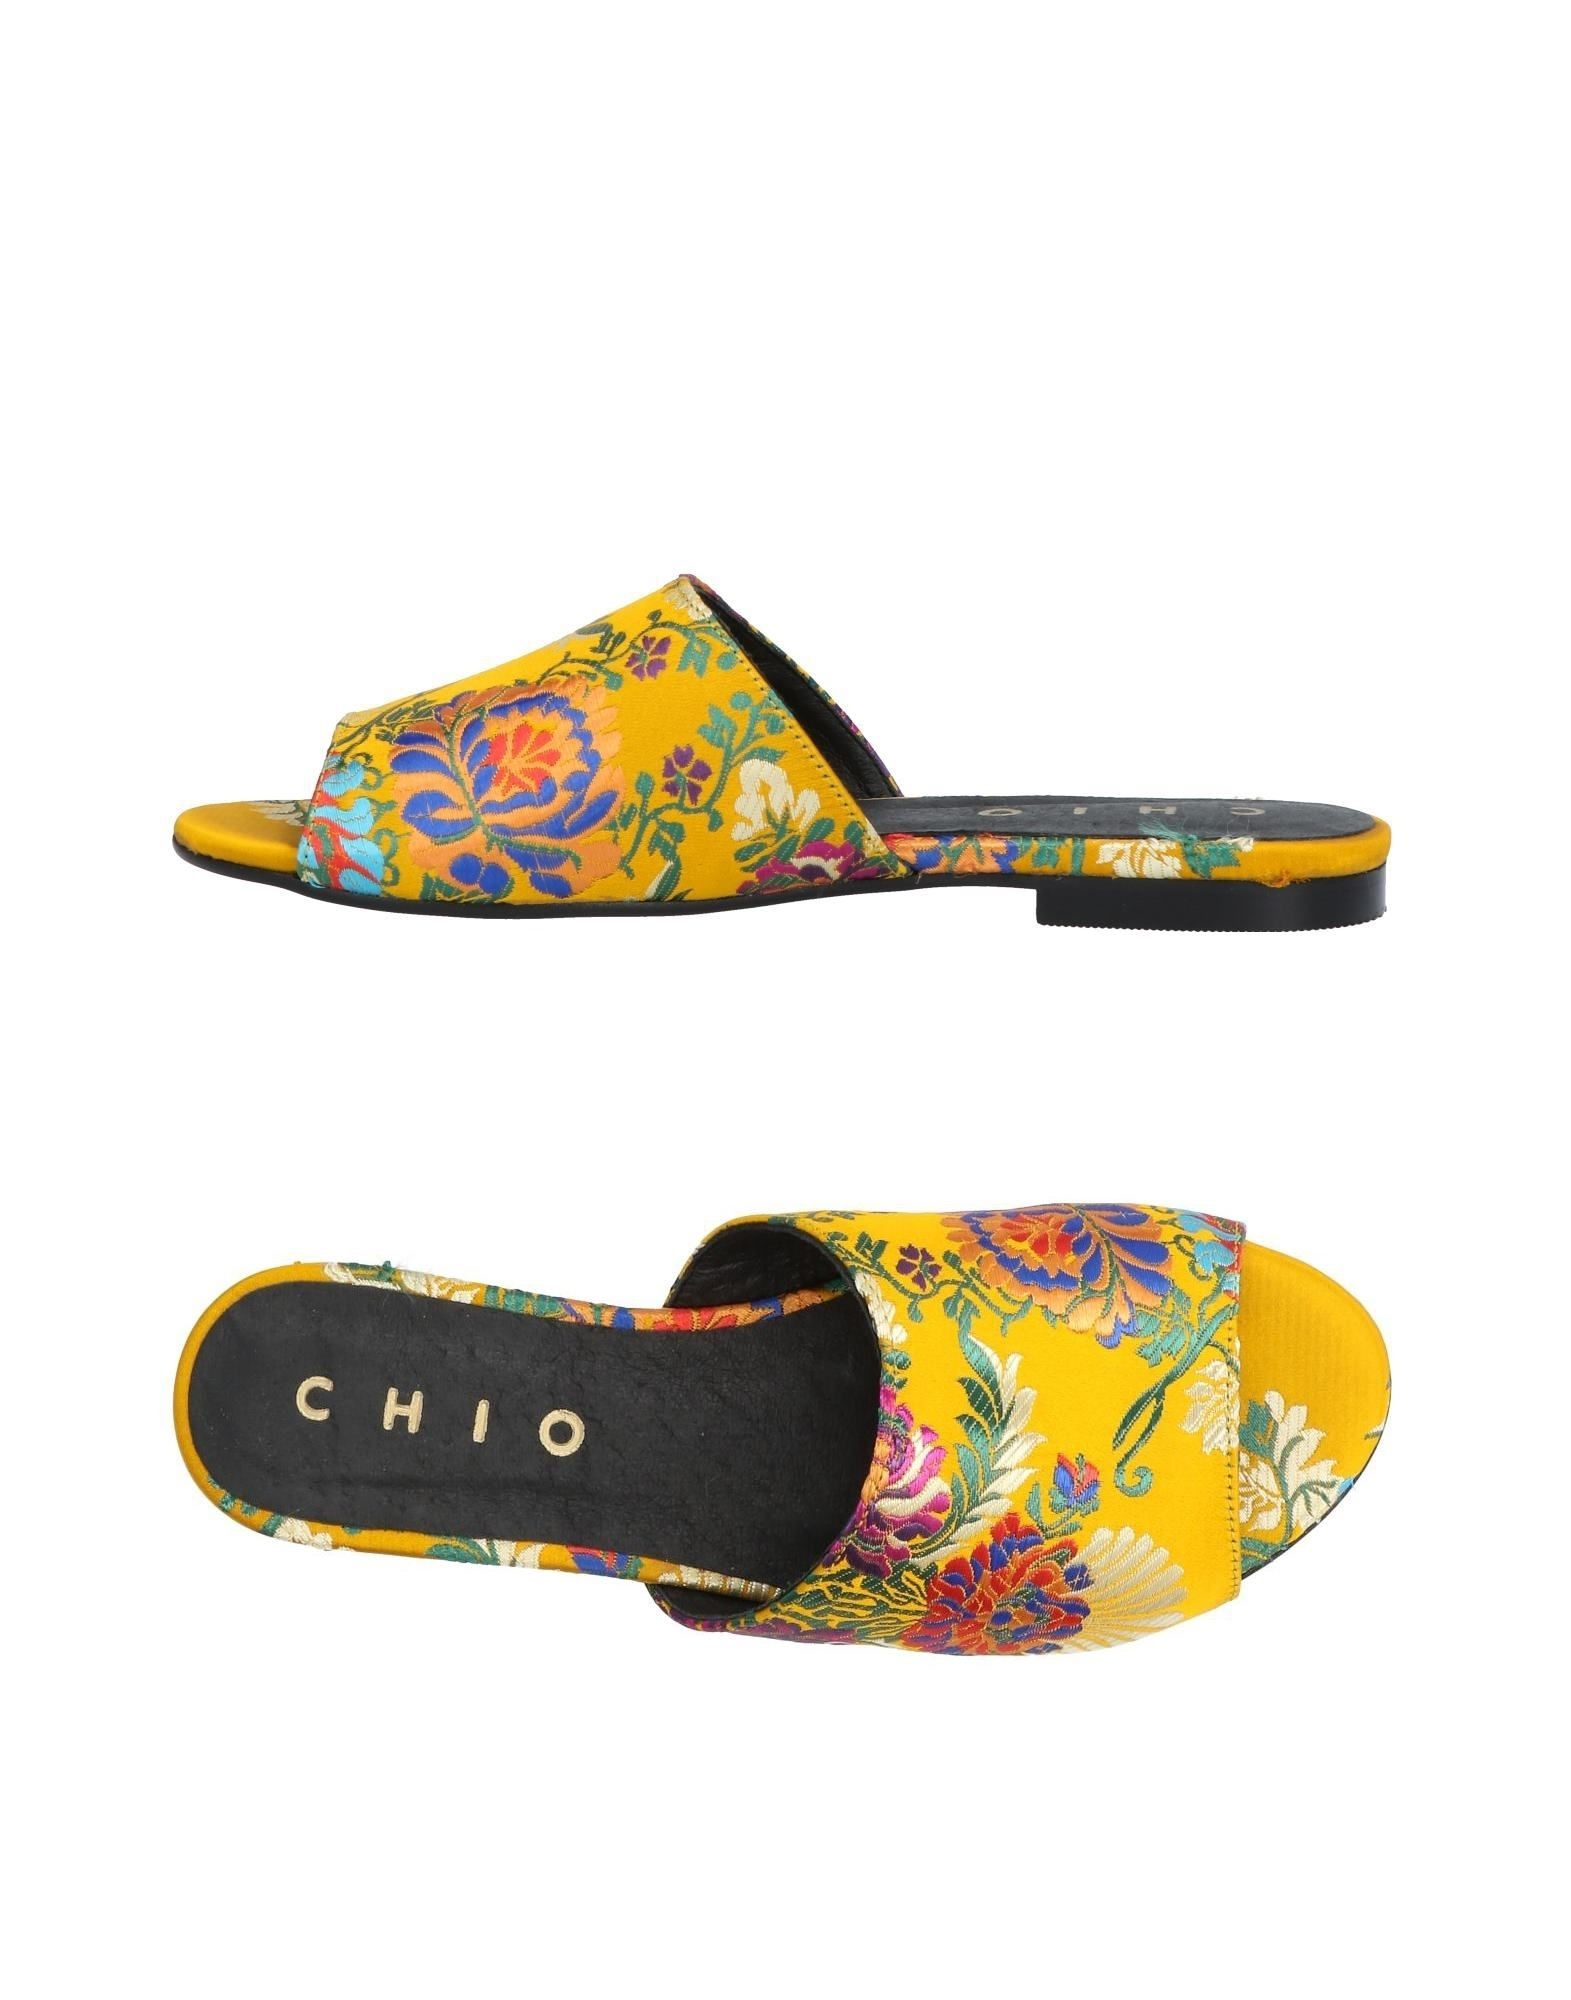 CHIO Sandals in Yellow